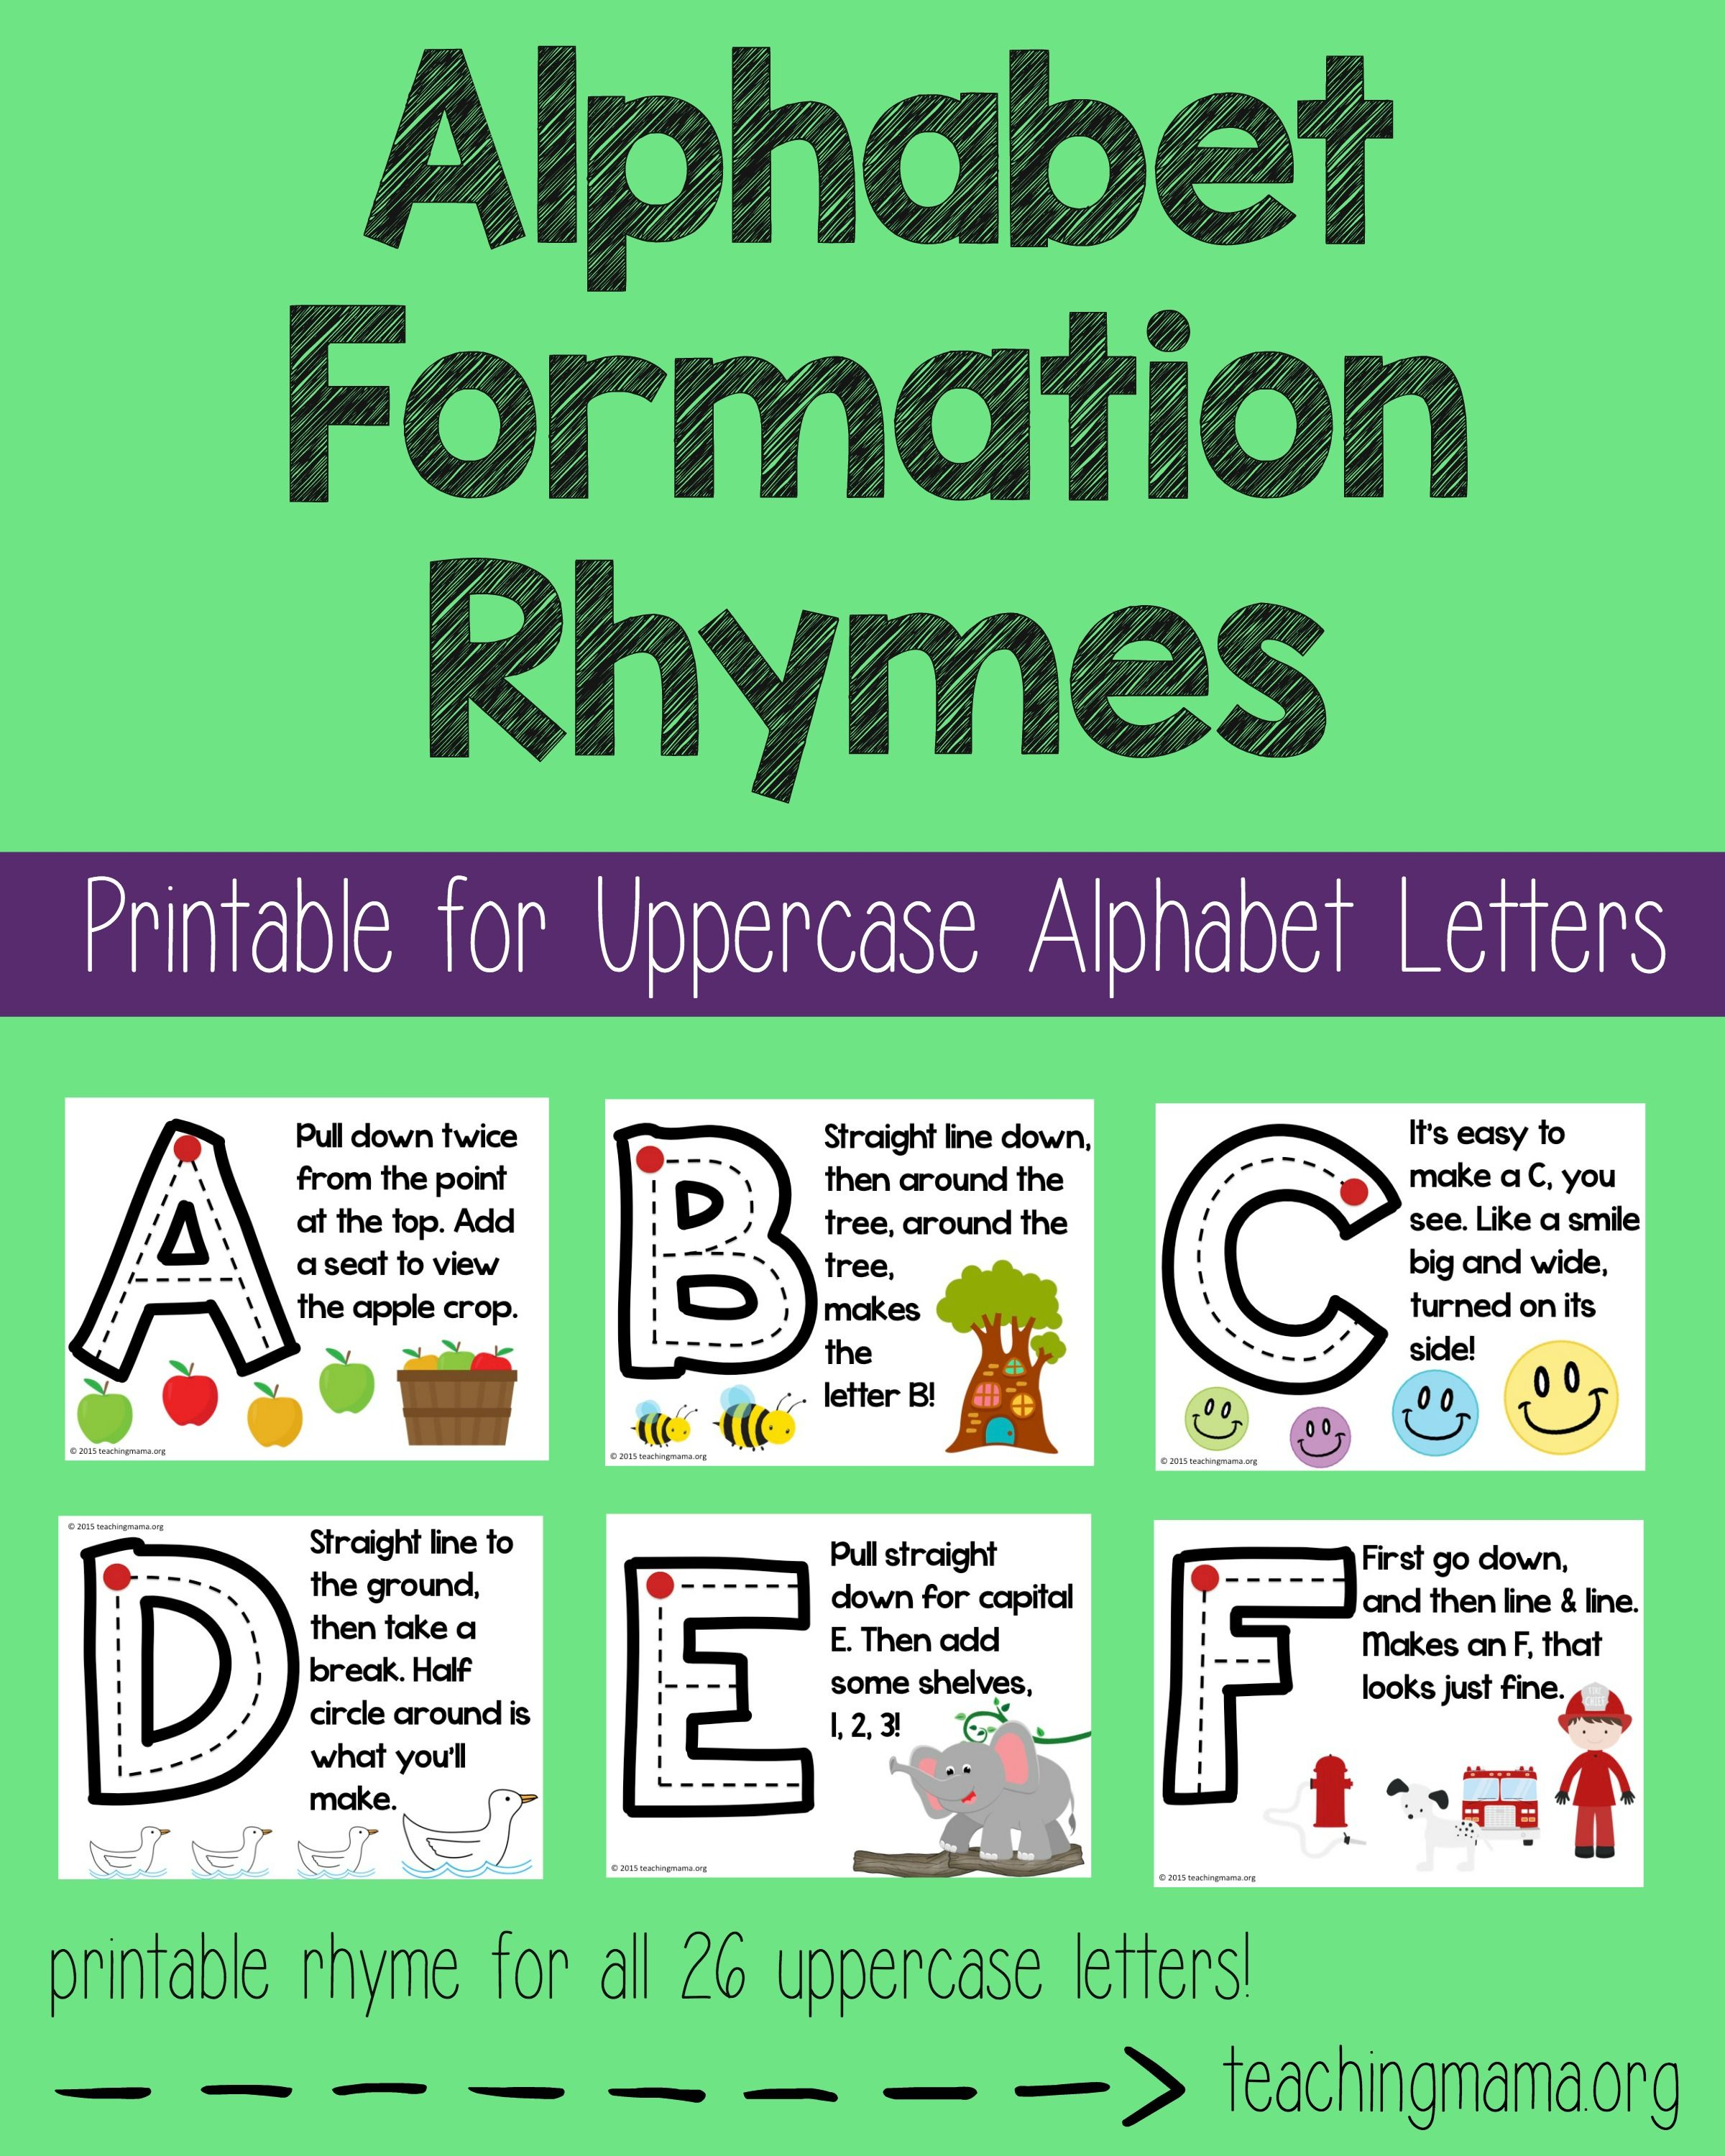 Alphabet formation rhymes rhyming words uppercase alphabet and alphabet formation rhymes mitanshu Image collections